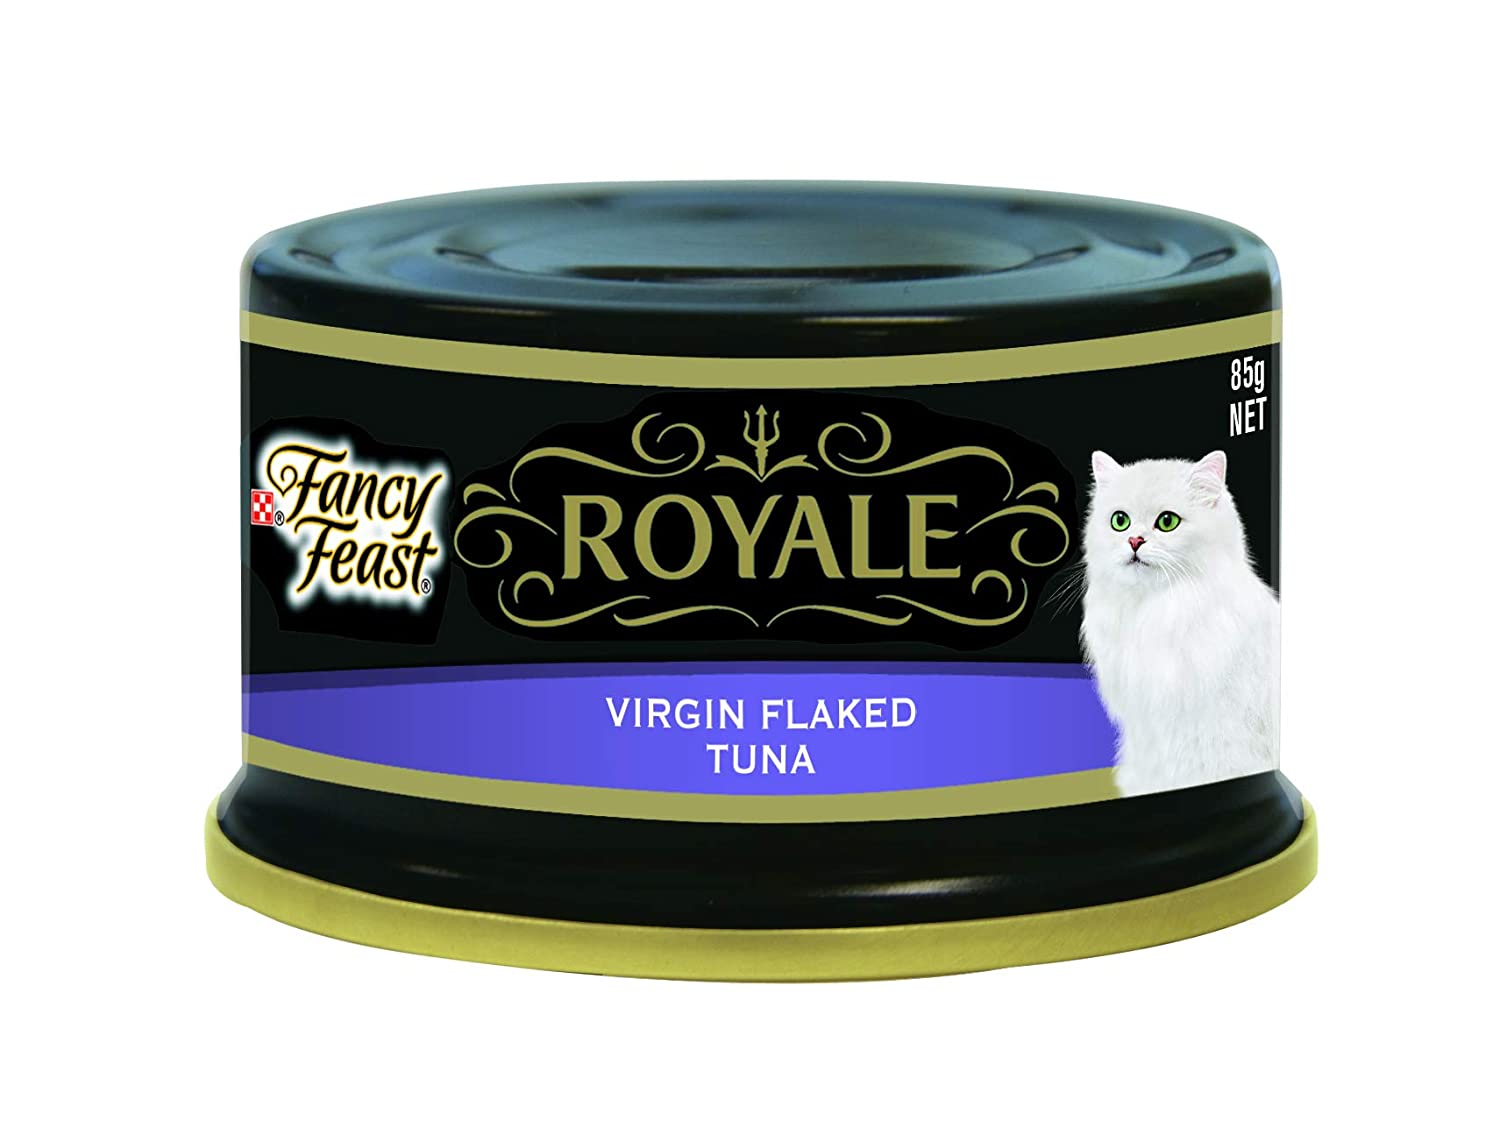 Fancy Feast Royale Virgin Flaked Tuna, 24X85g